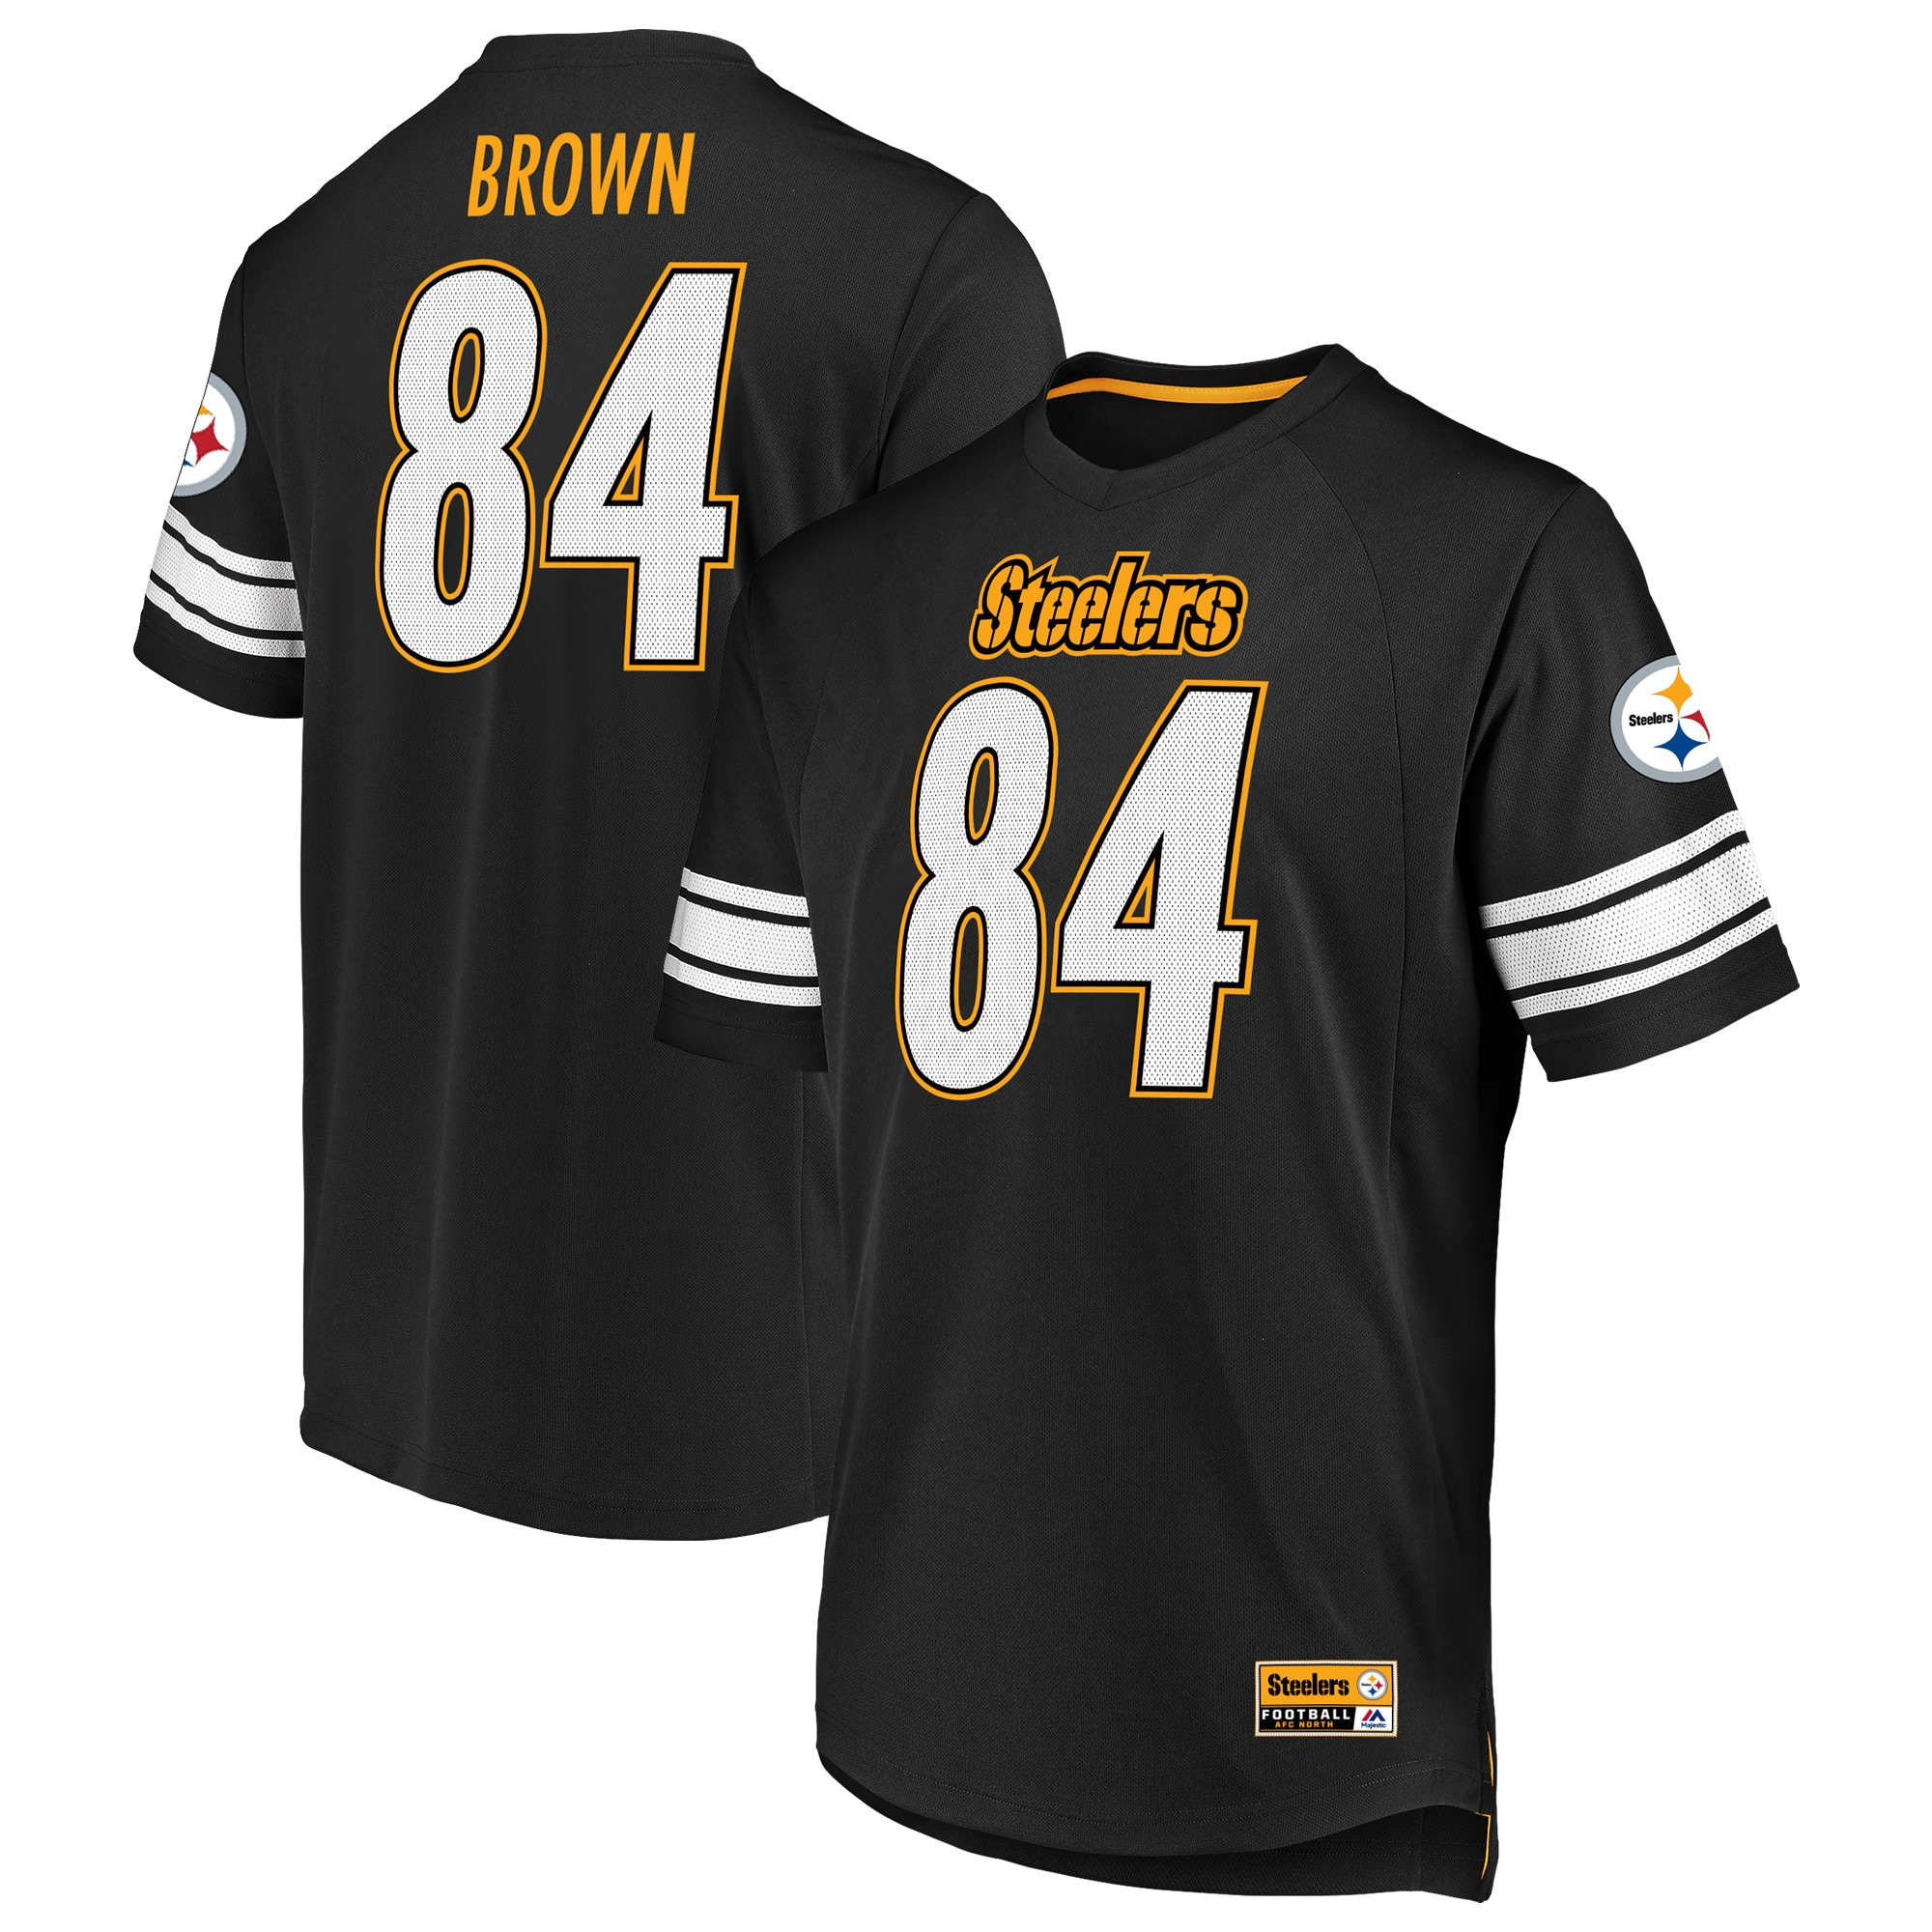 Antonio Brown Pittsburgh Steelers Majestic Hashmark Player Name & Number T-Shirt - Black